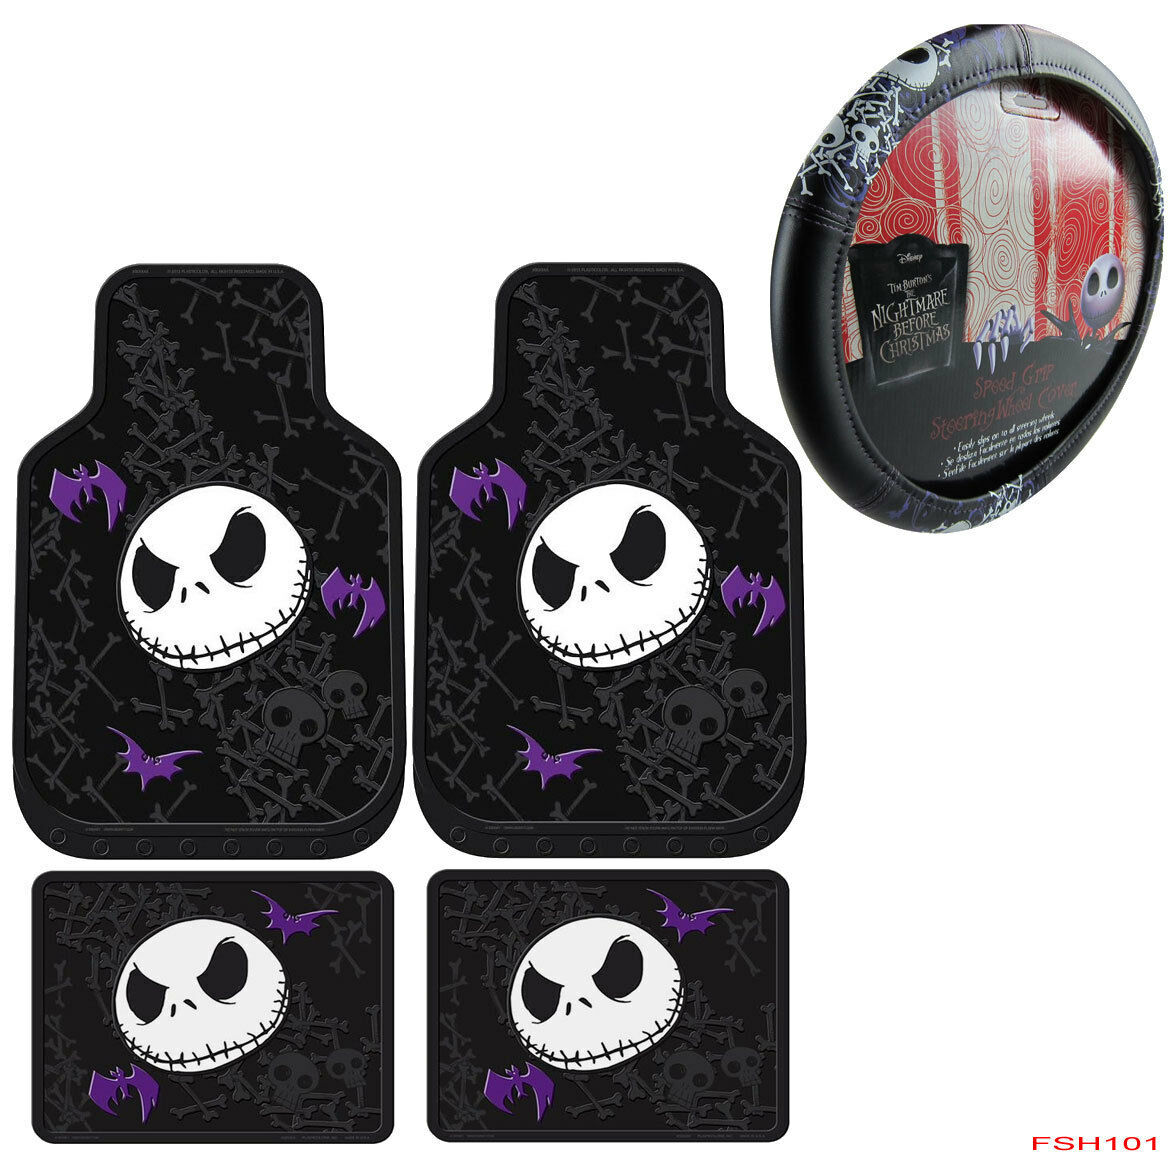 1 of 3free shipping 5pcs nightmare before christmas car truck floor mats steering wheel cover set - Nightmare Before Christmas Steering Wheel Cover